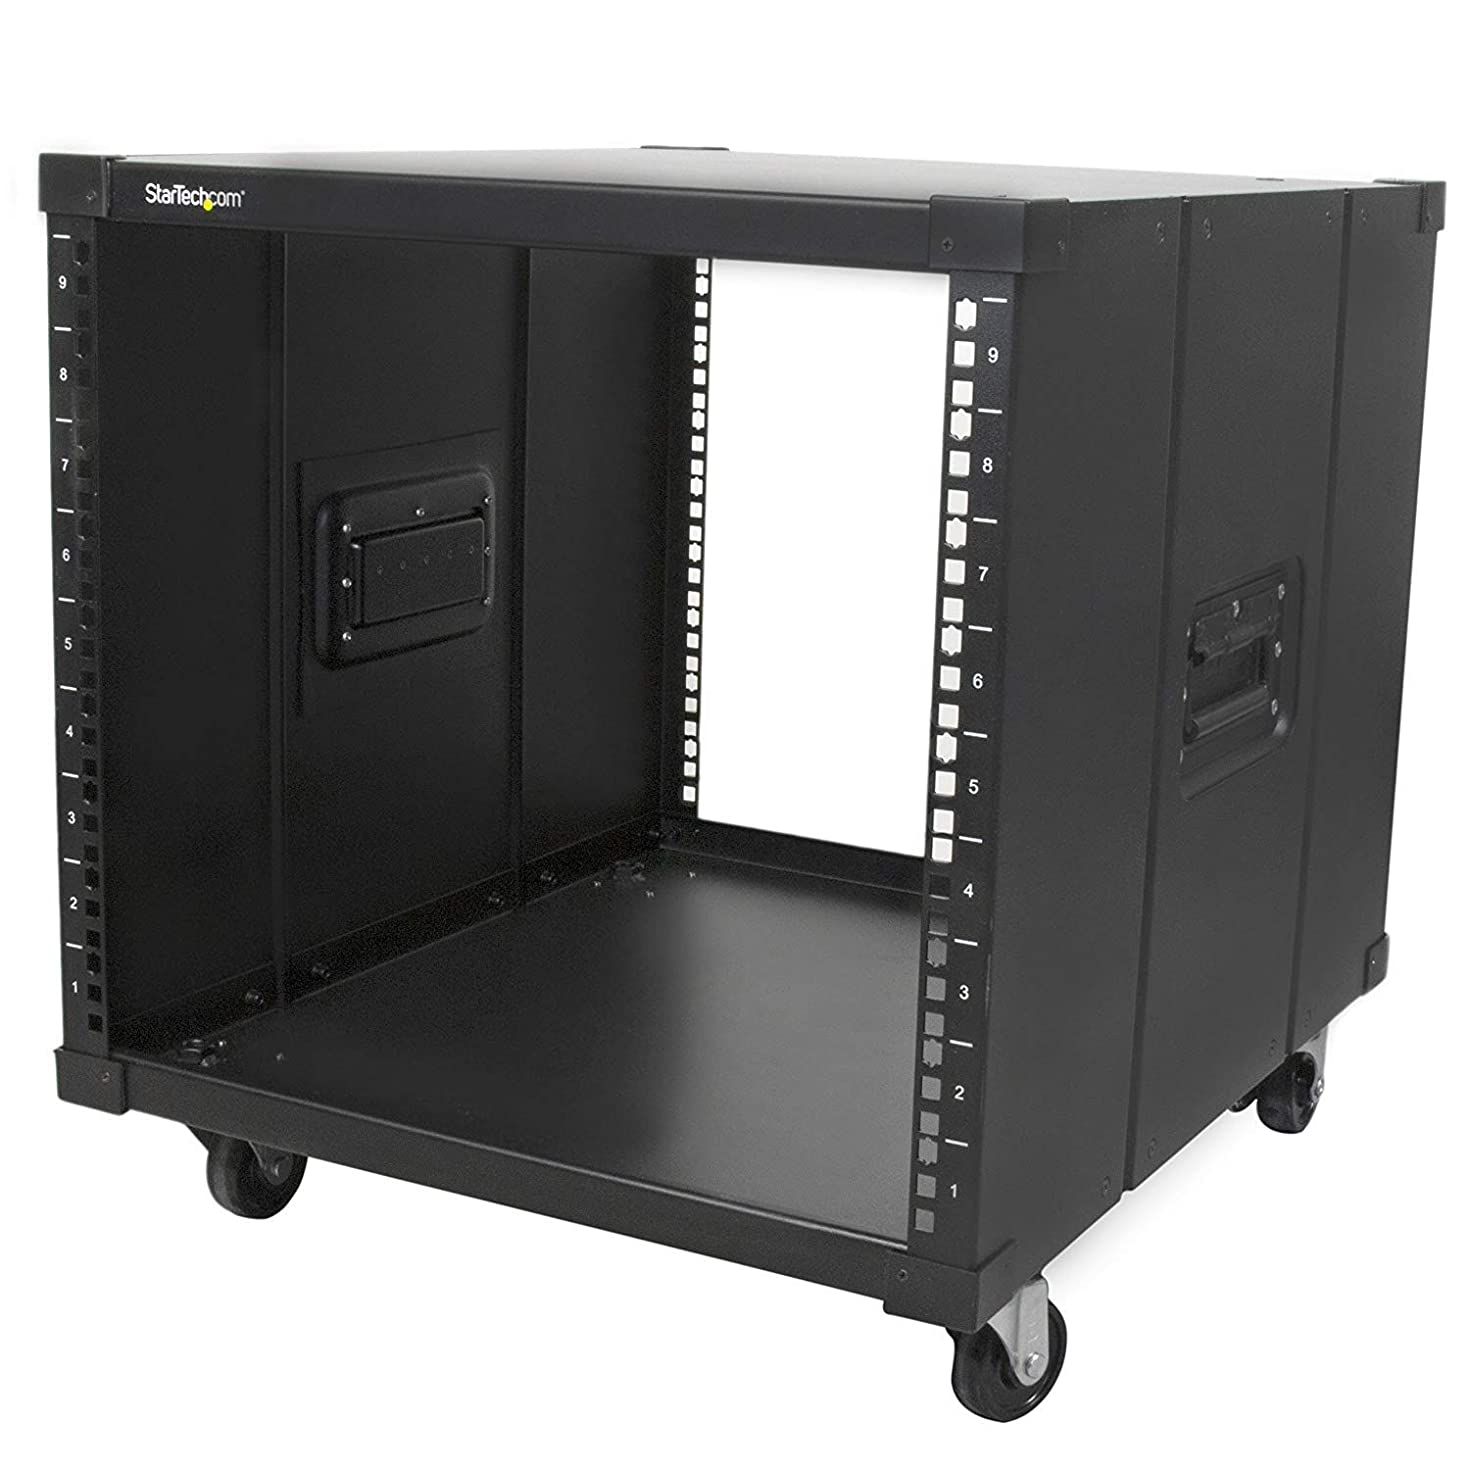 StarTech.com Portable Server Rack with Handles - Rolling Cabinet - 9U